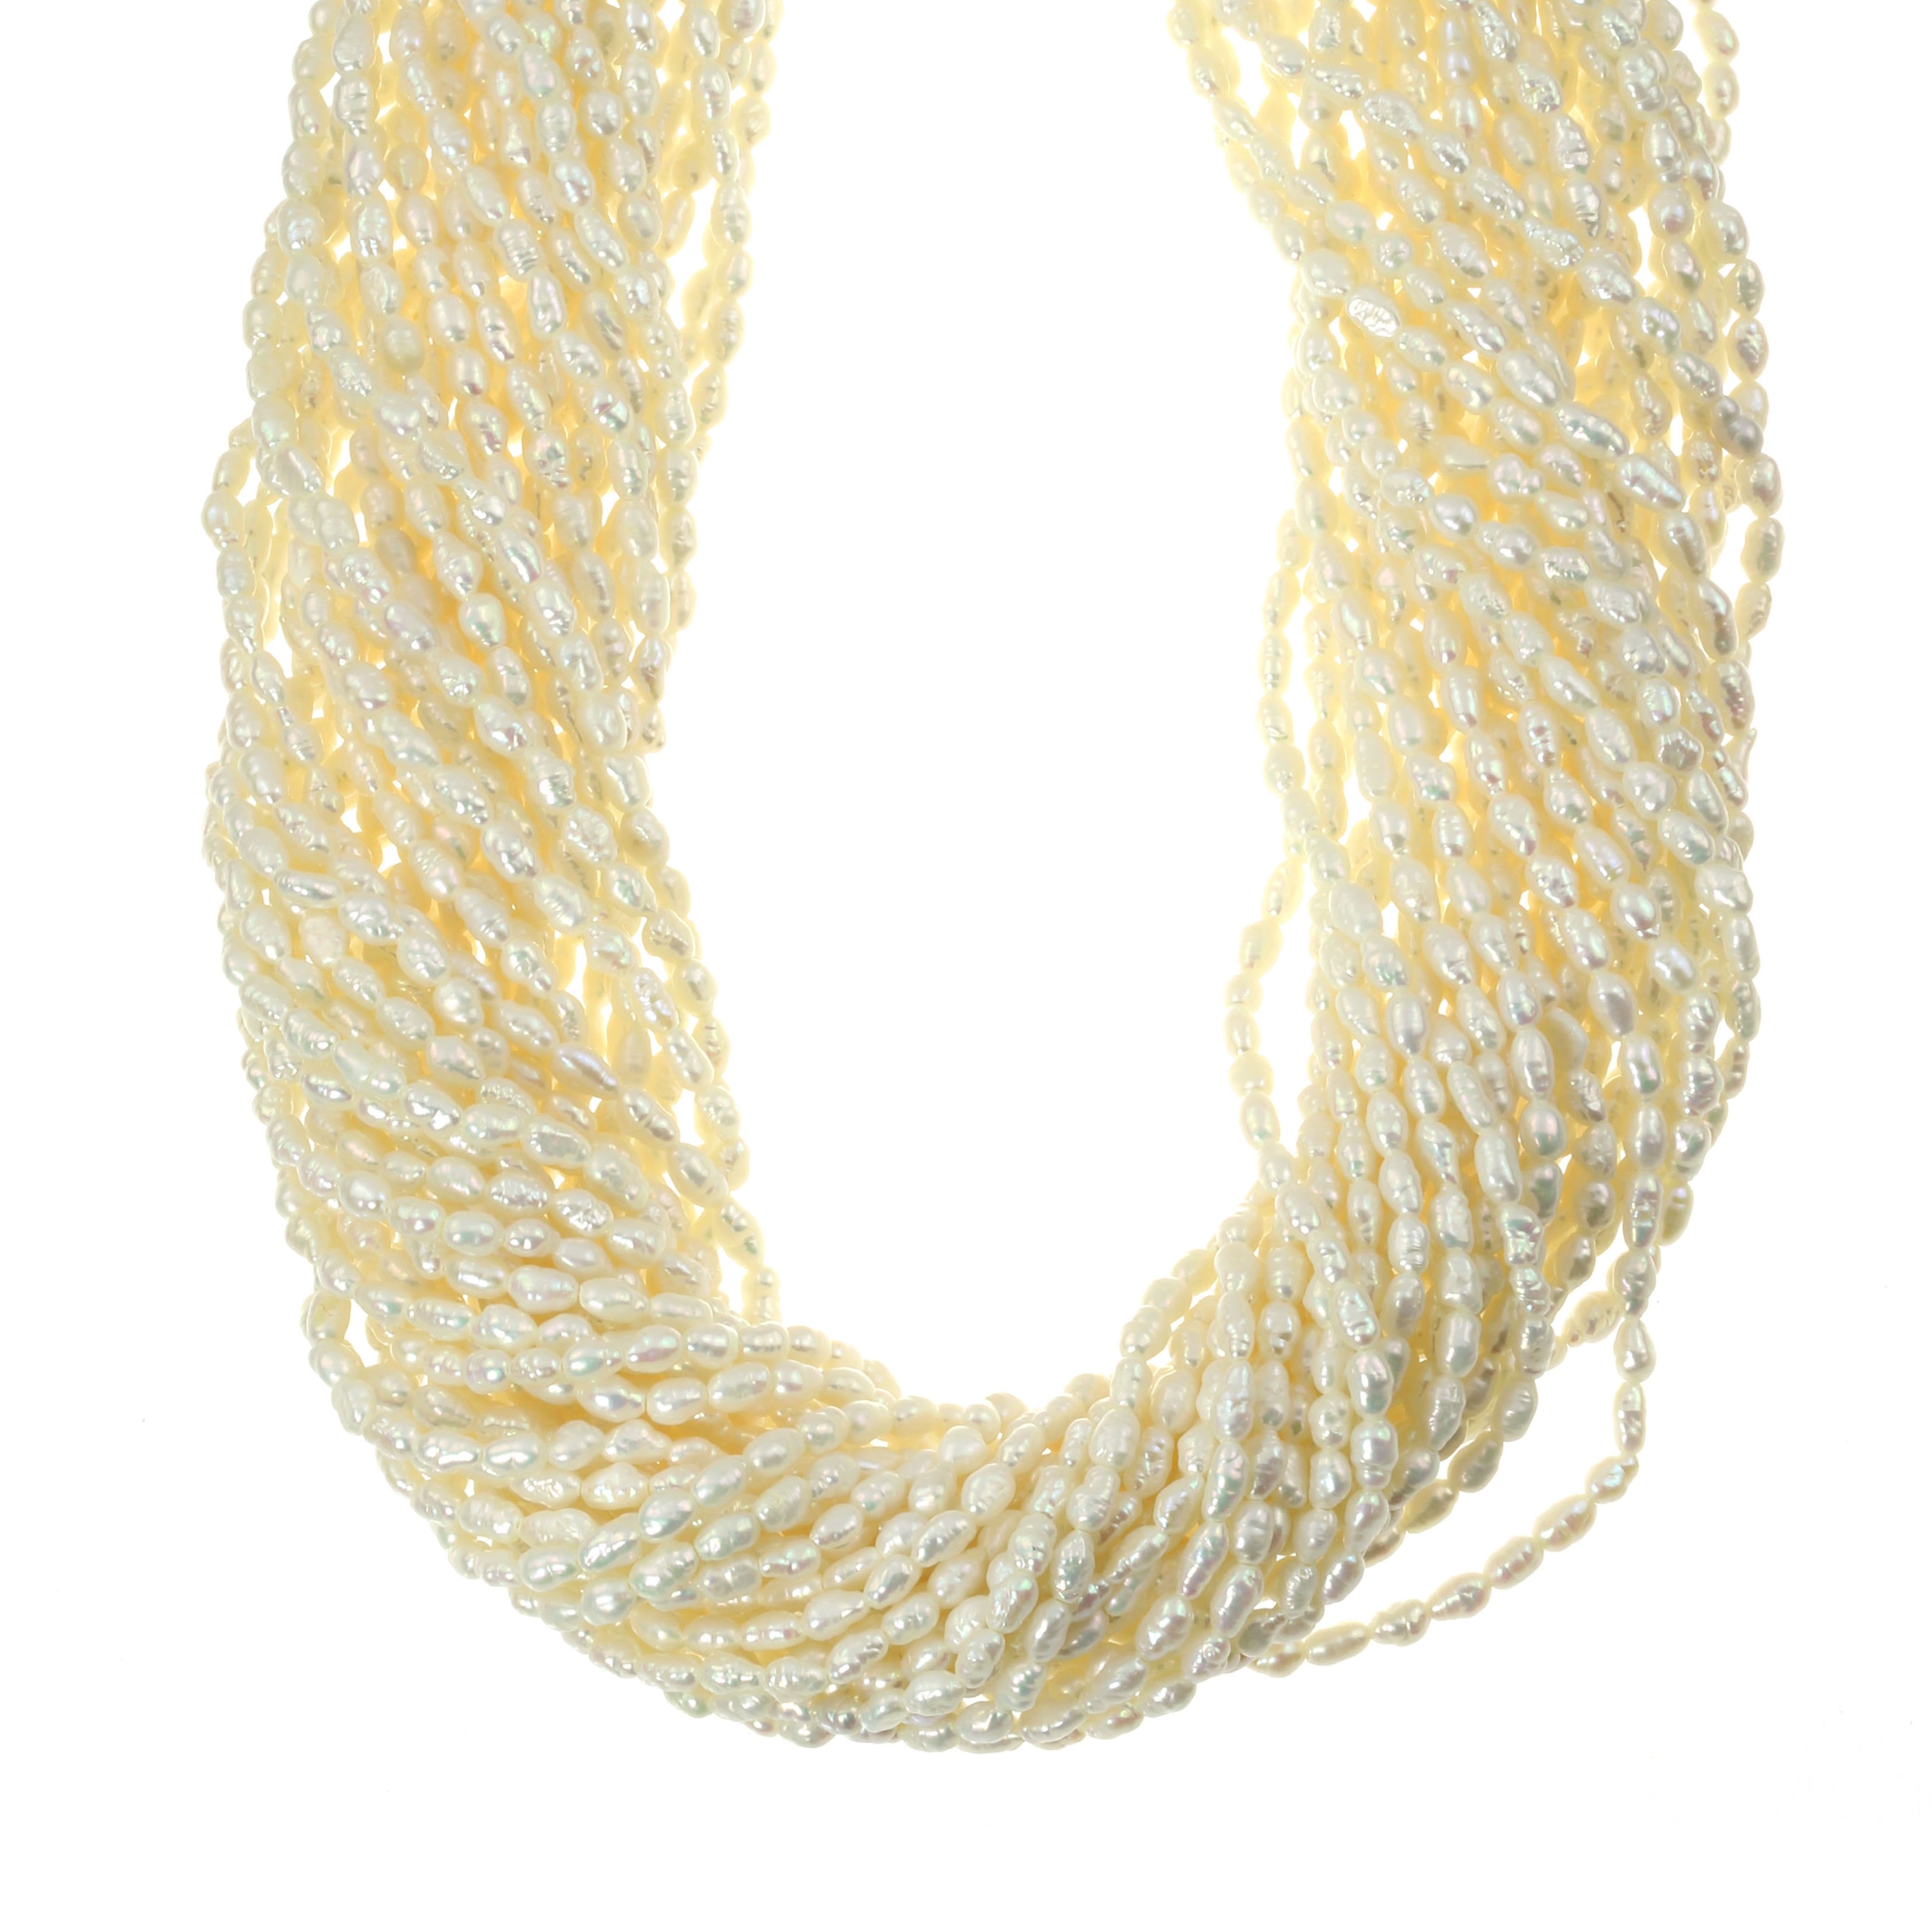 Los 17 - A PEARL TORSAE NECKLACE in 18ct yellow gold, comprising several strands of pearls twisted around